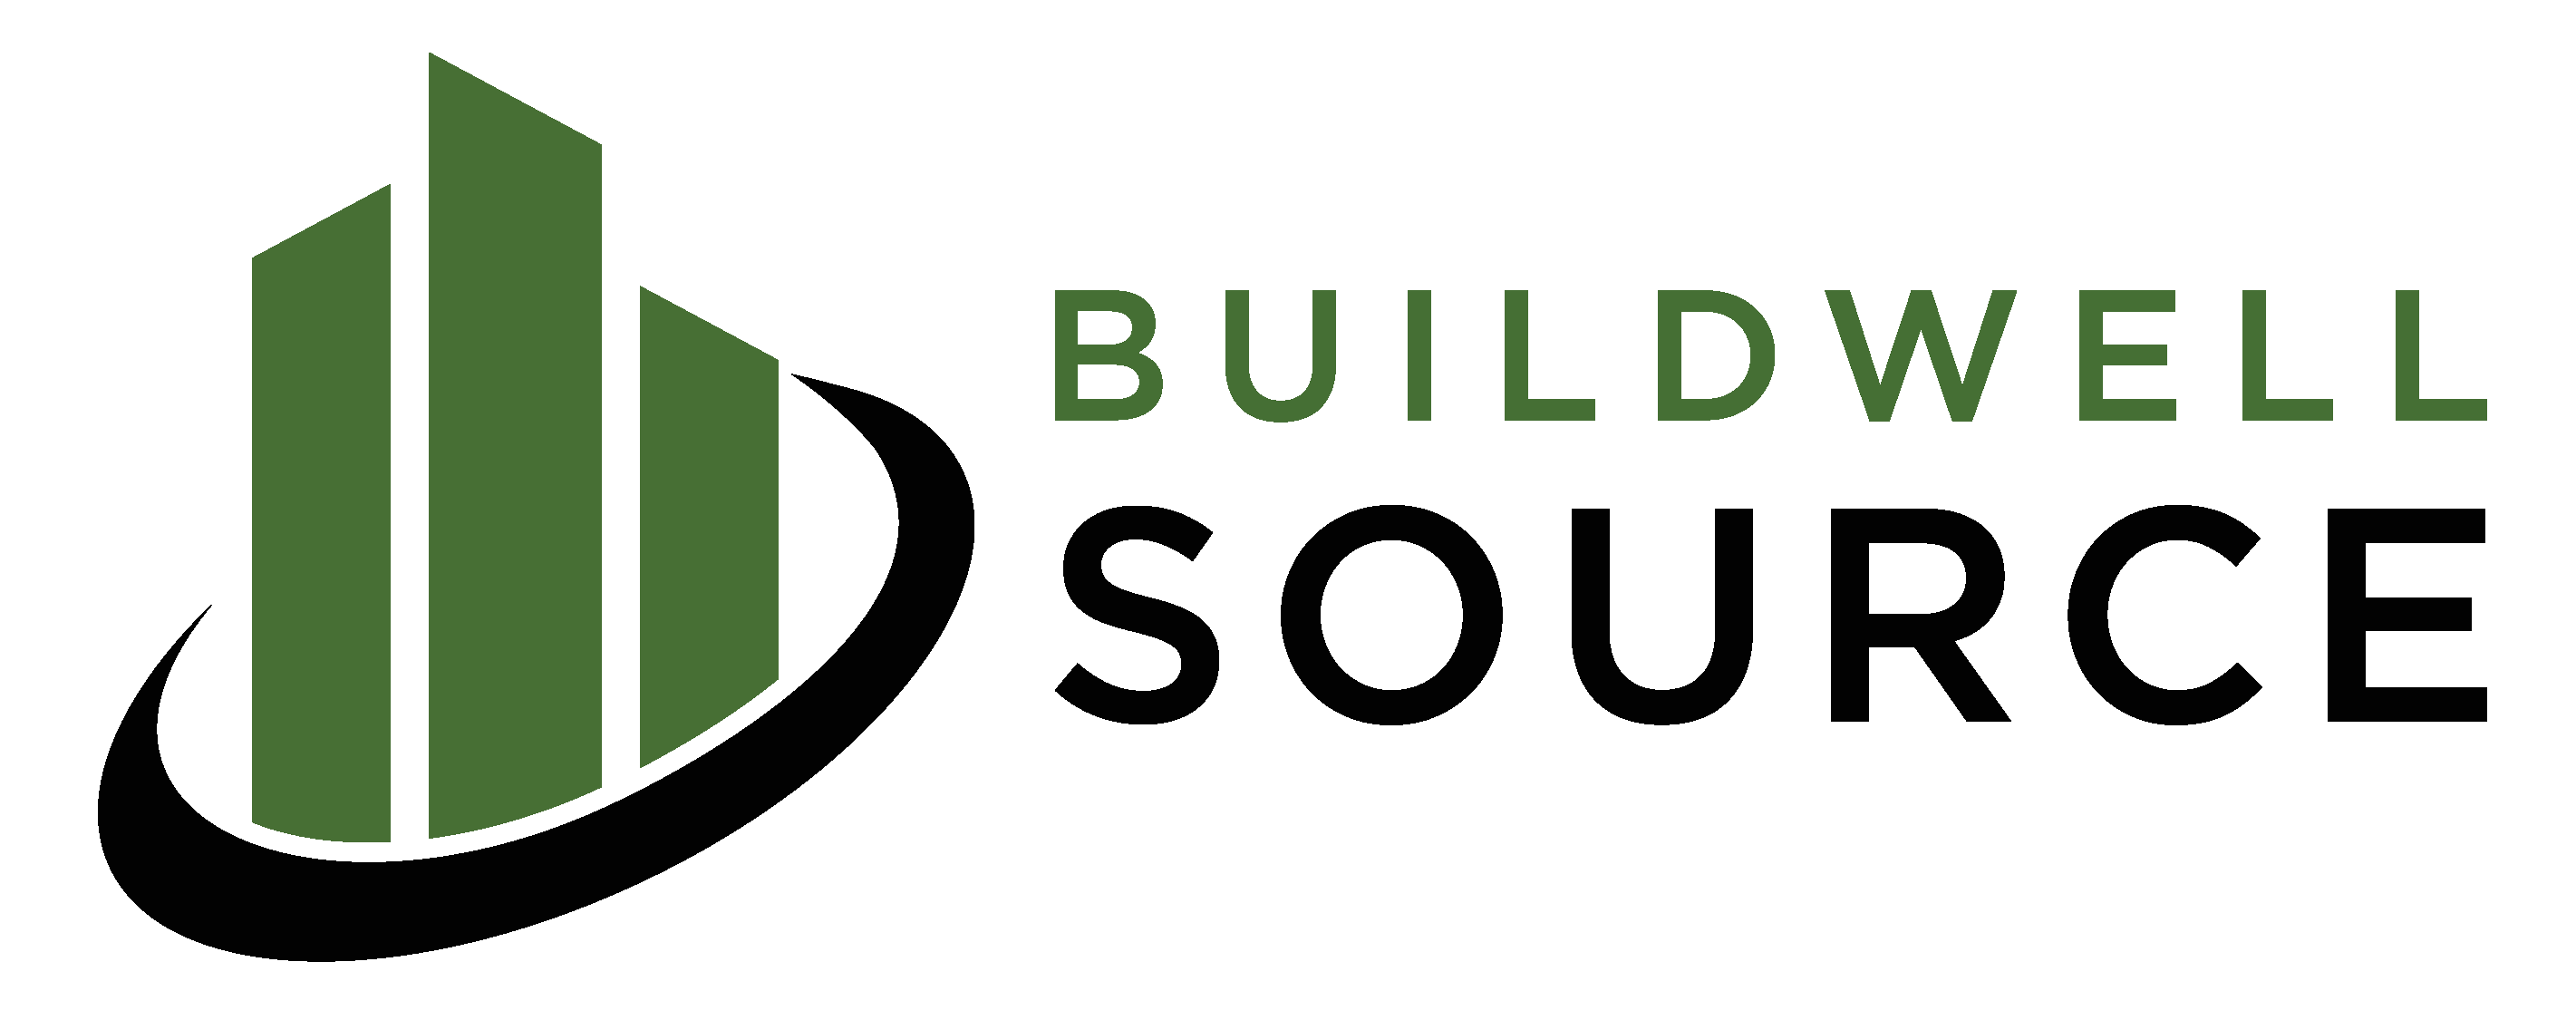 BUILDWELLSOURCElogo1 01